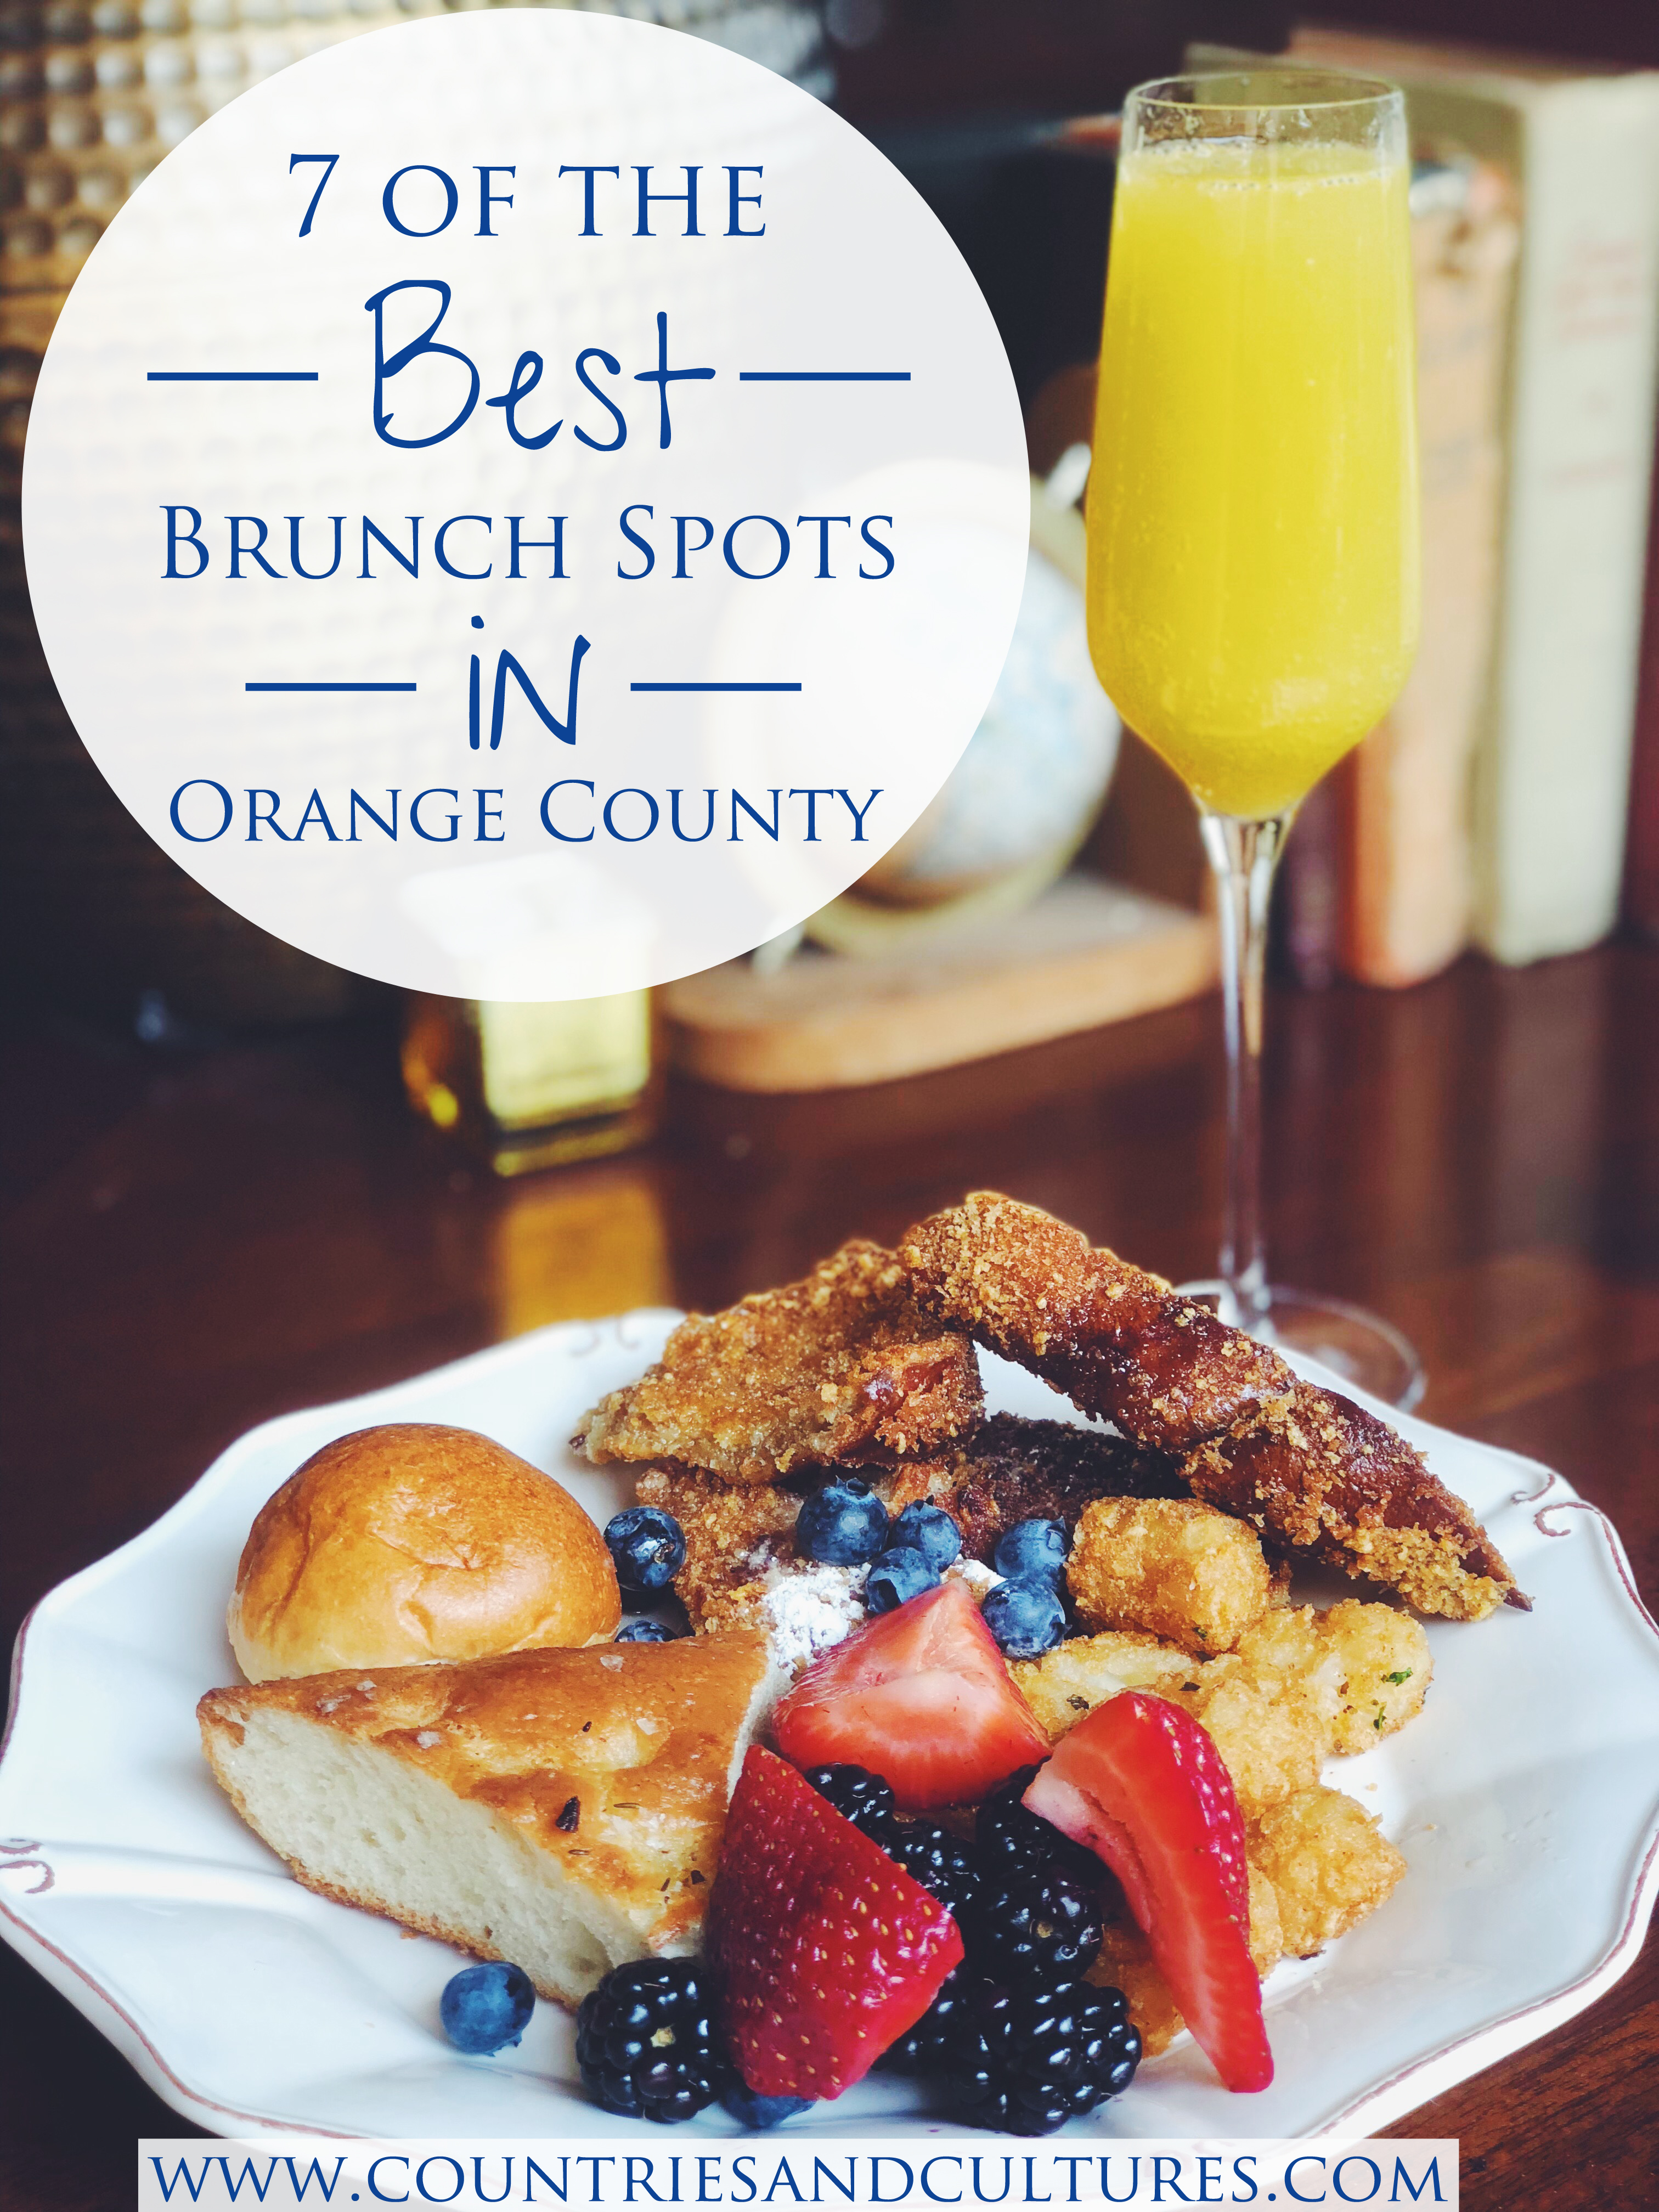 Groovy 7 Of The Best Brunch Spots In Orange County Countries Download Free Architecture Designs Intelgarnamadebymaigaardcom